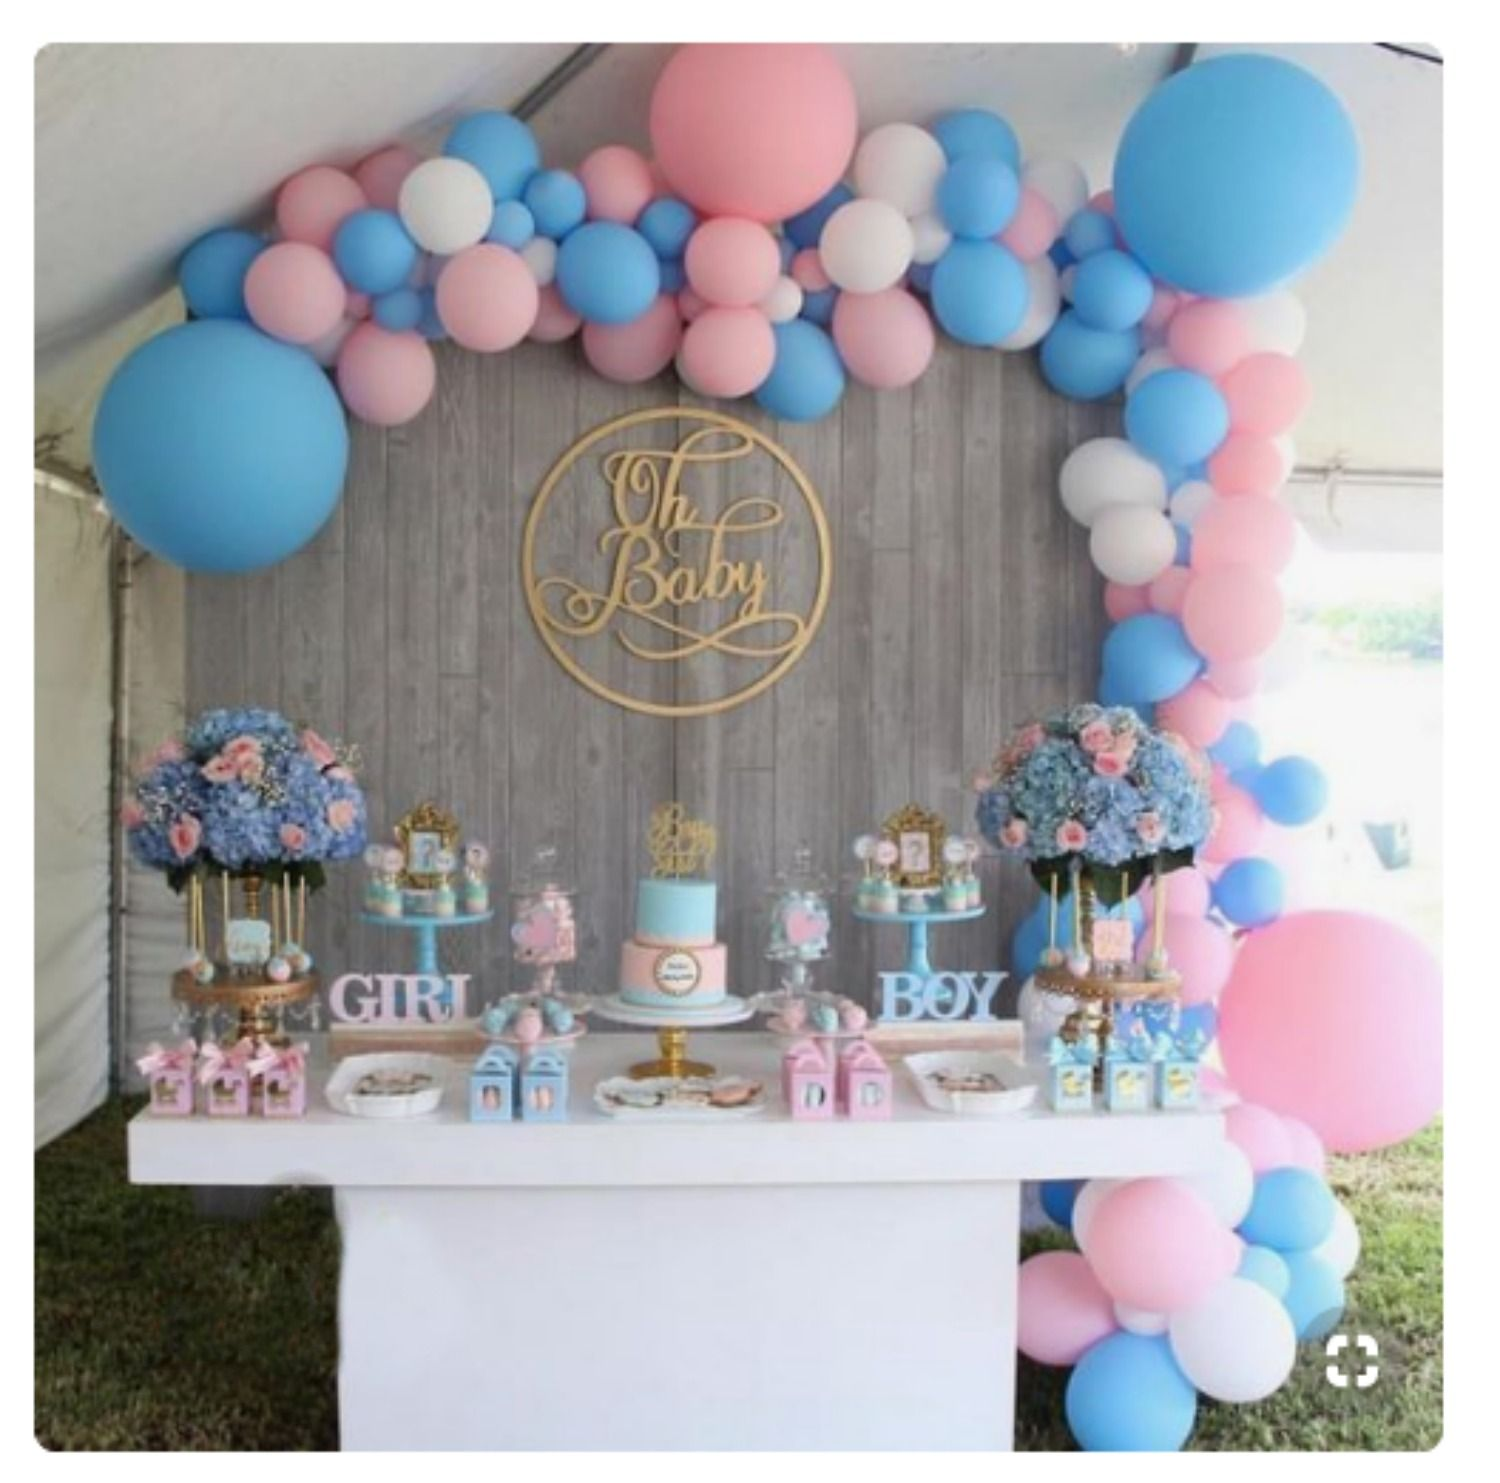 Pin By Allison Wilson On Stacy In 2020 Gender Reveal Party